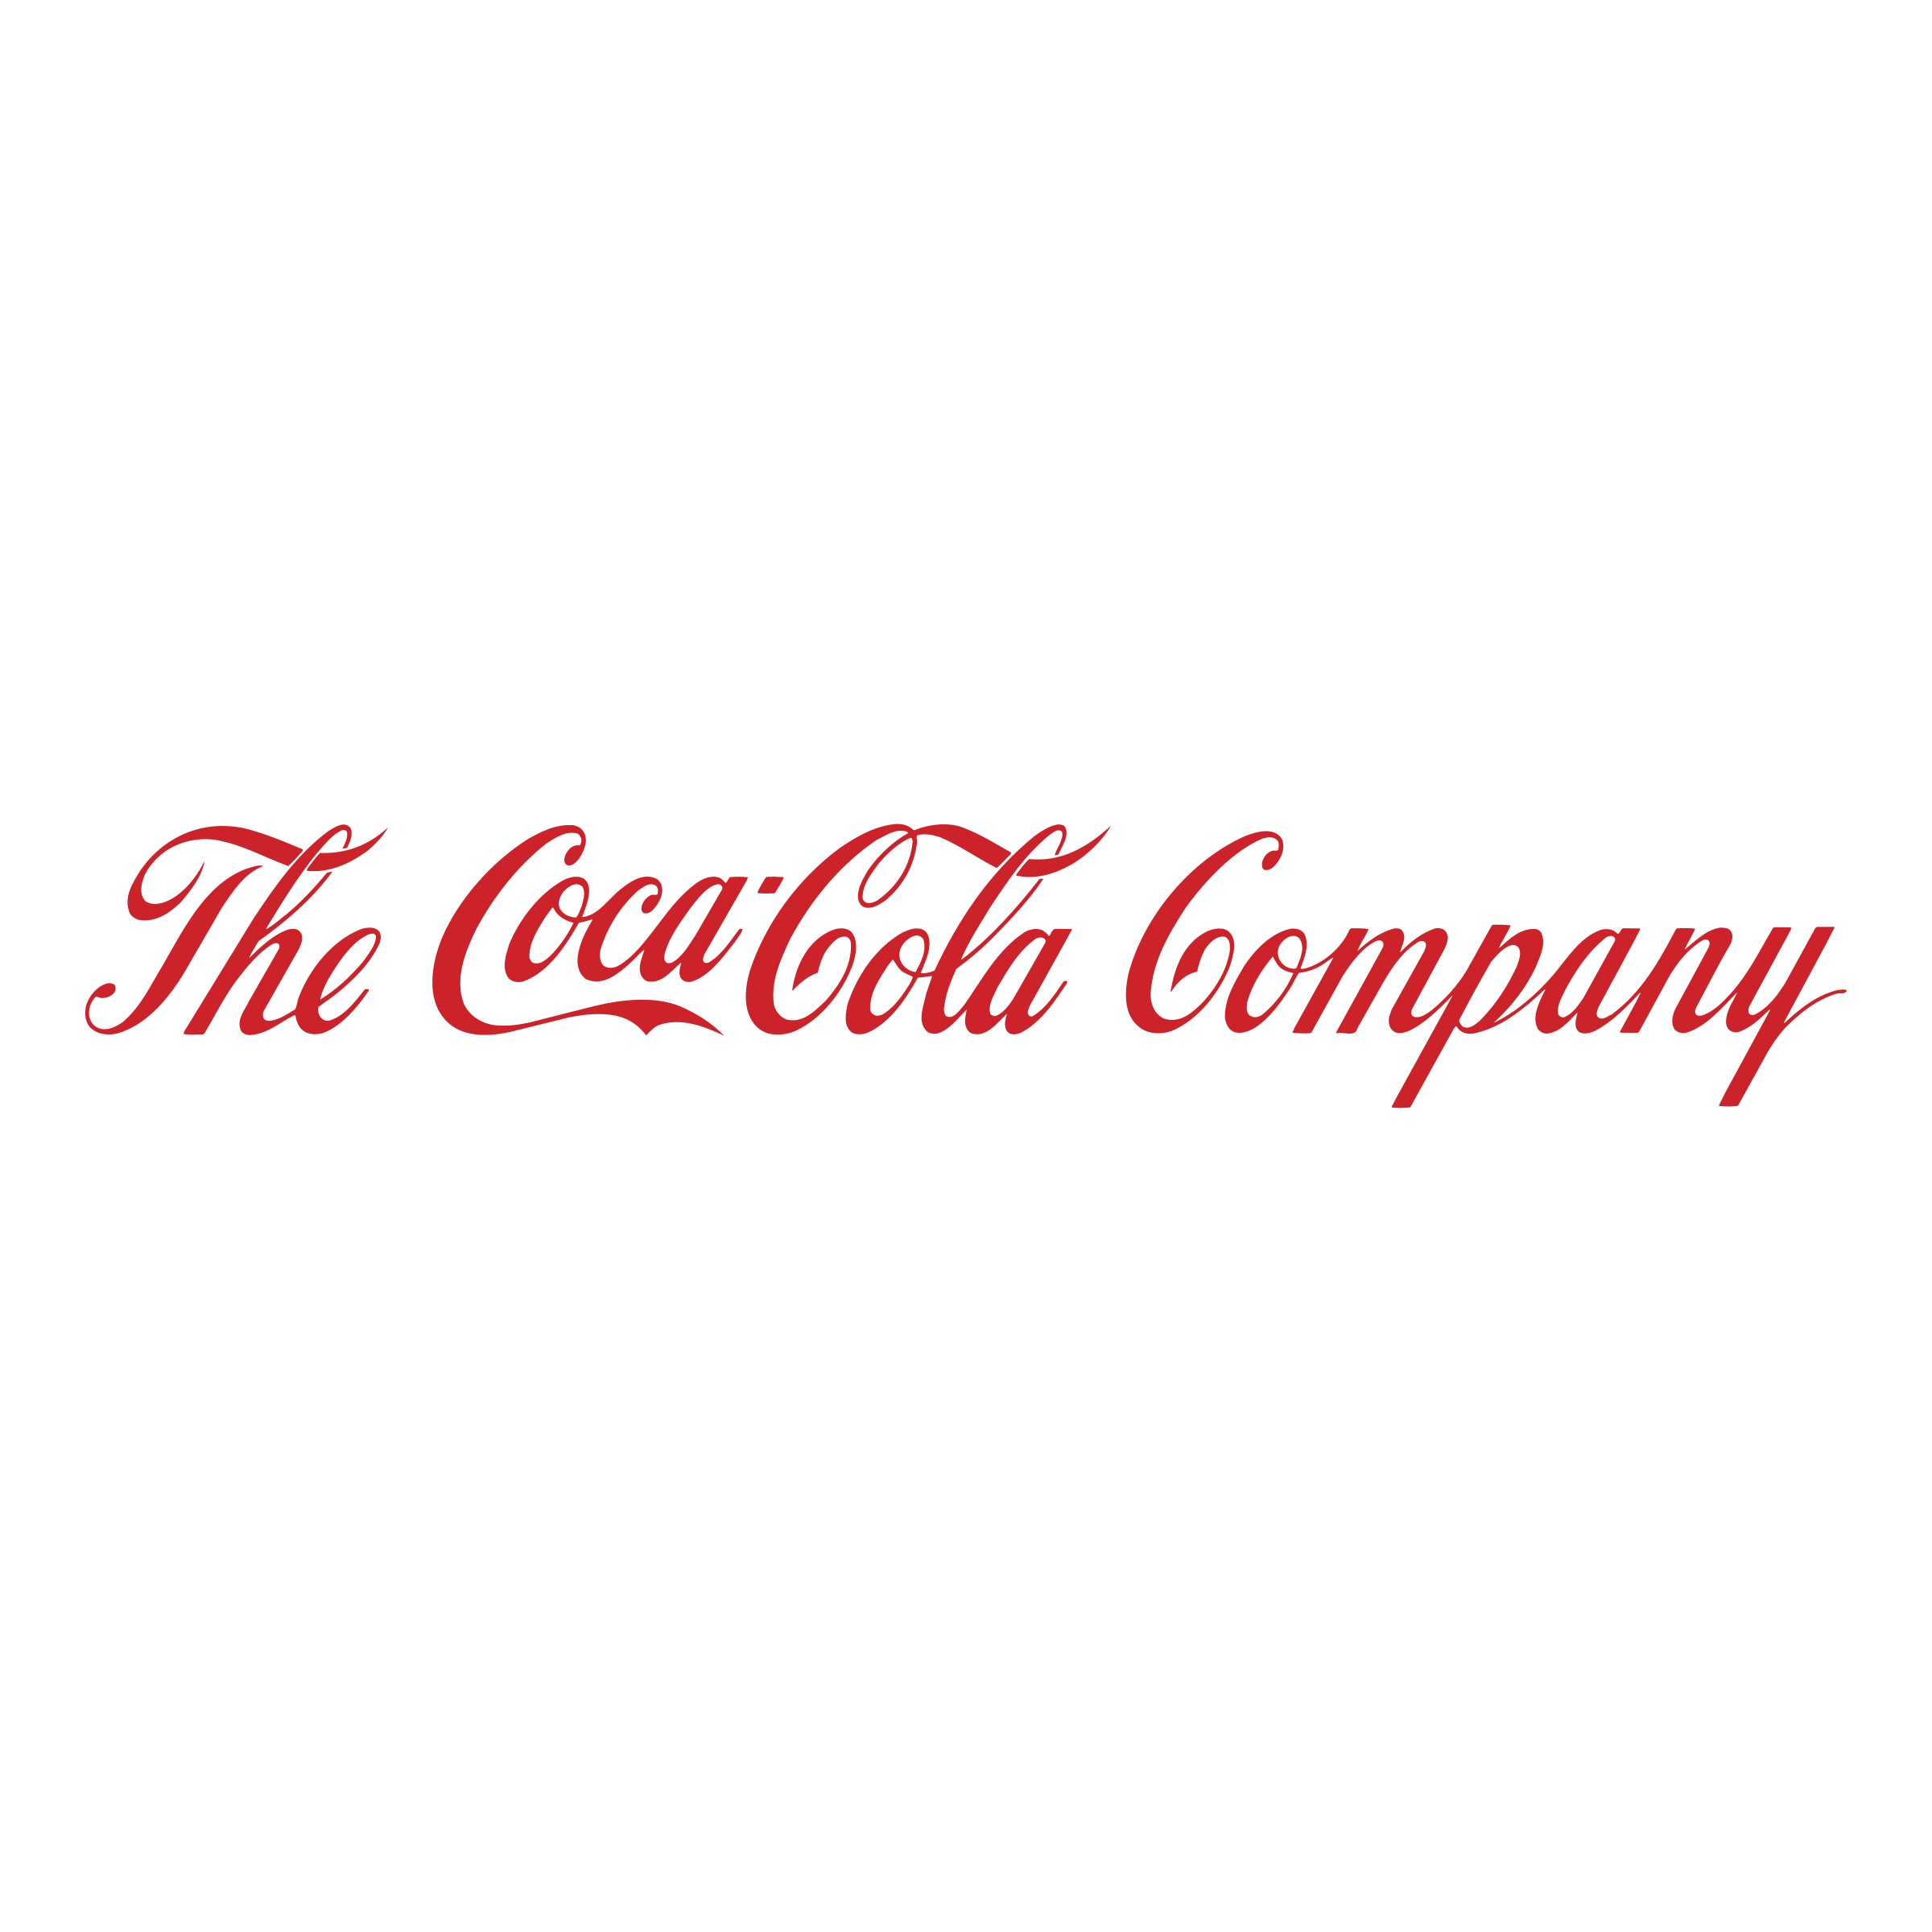 the coca cola company logo png transparent #32518